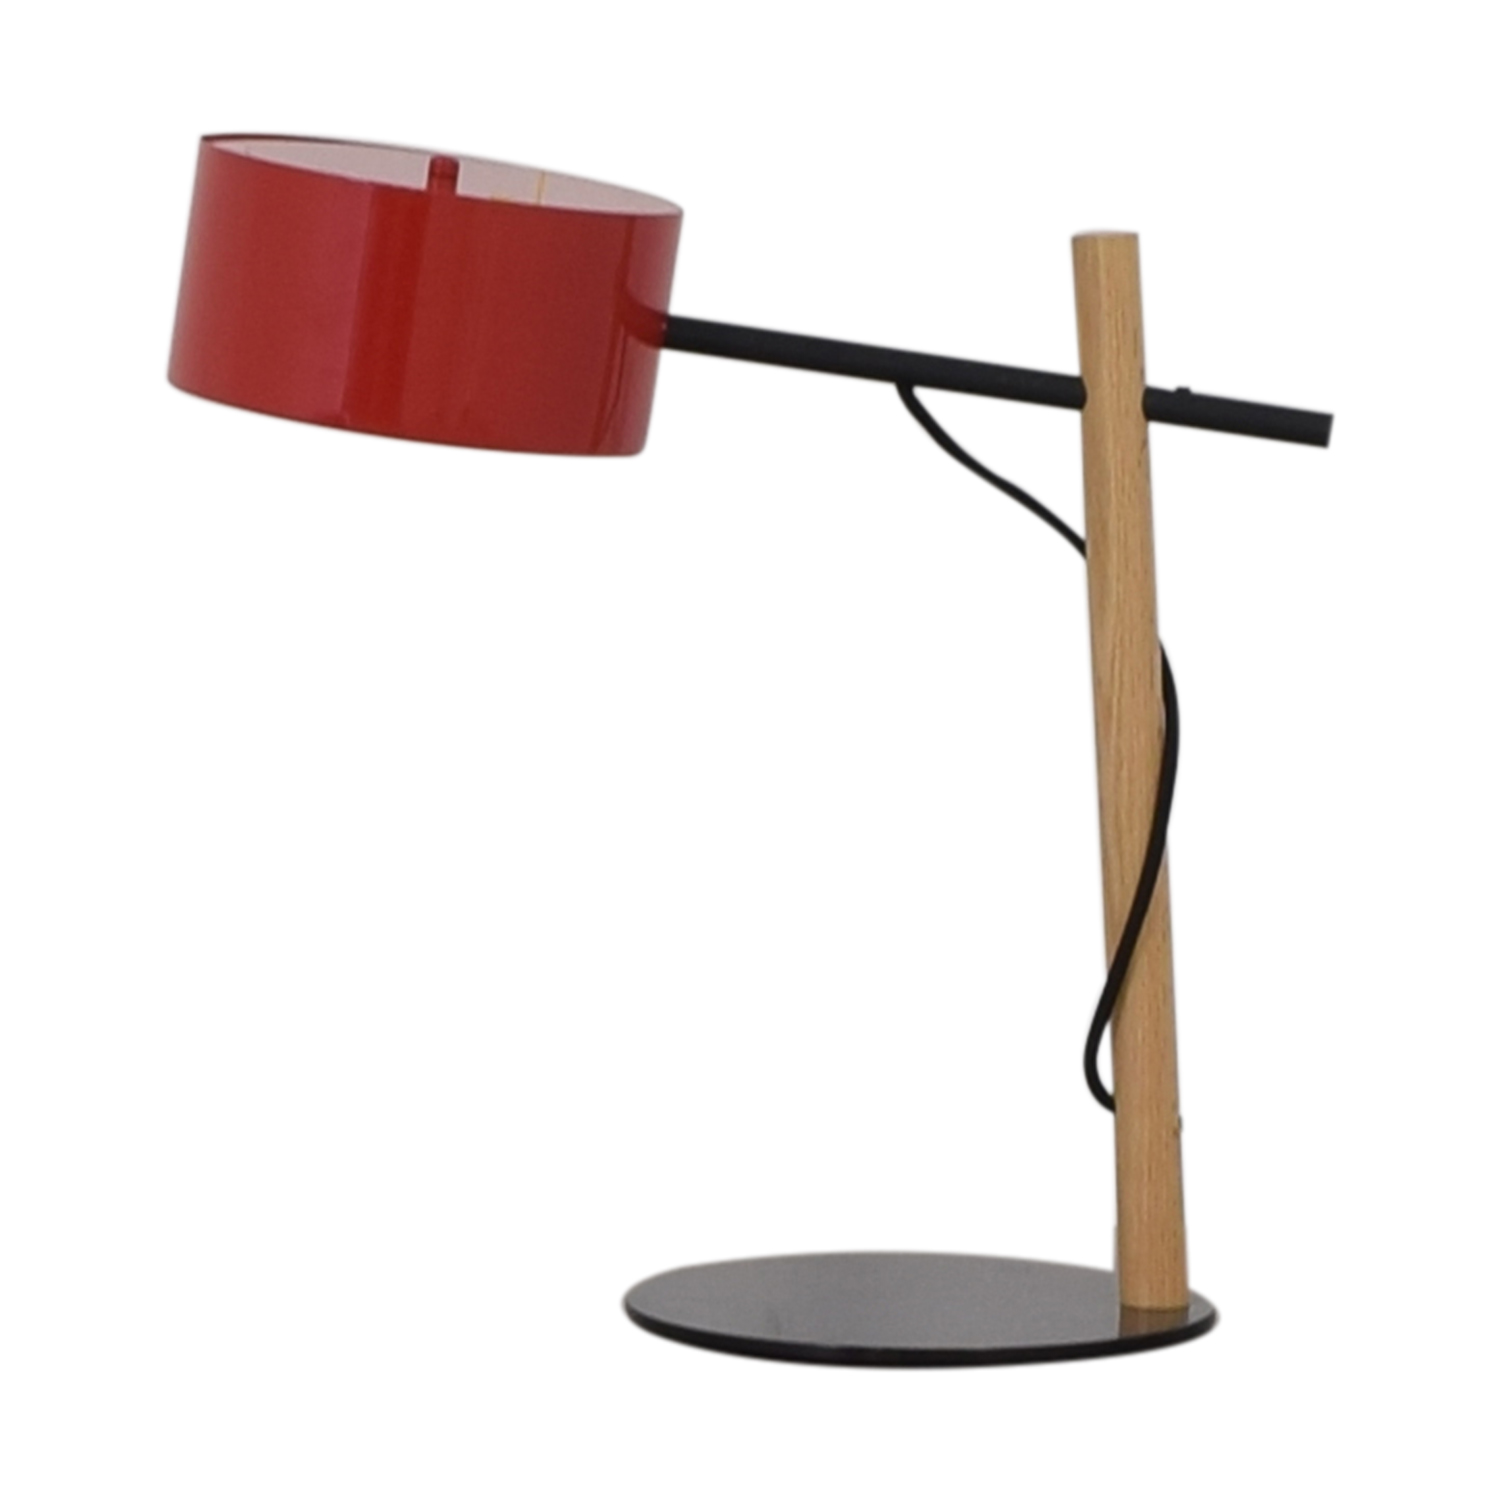 Roll & HIll Roll & Hill Excel Desk Lamp nj